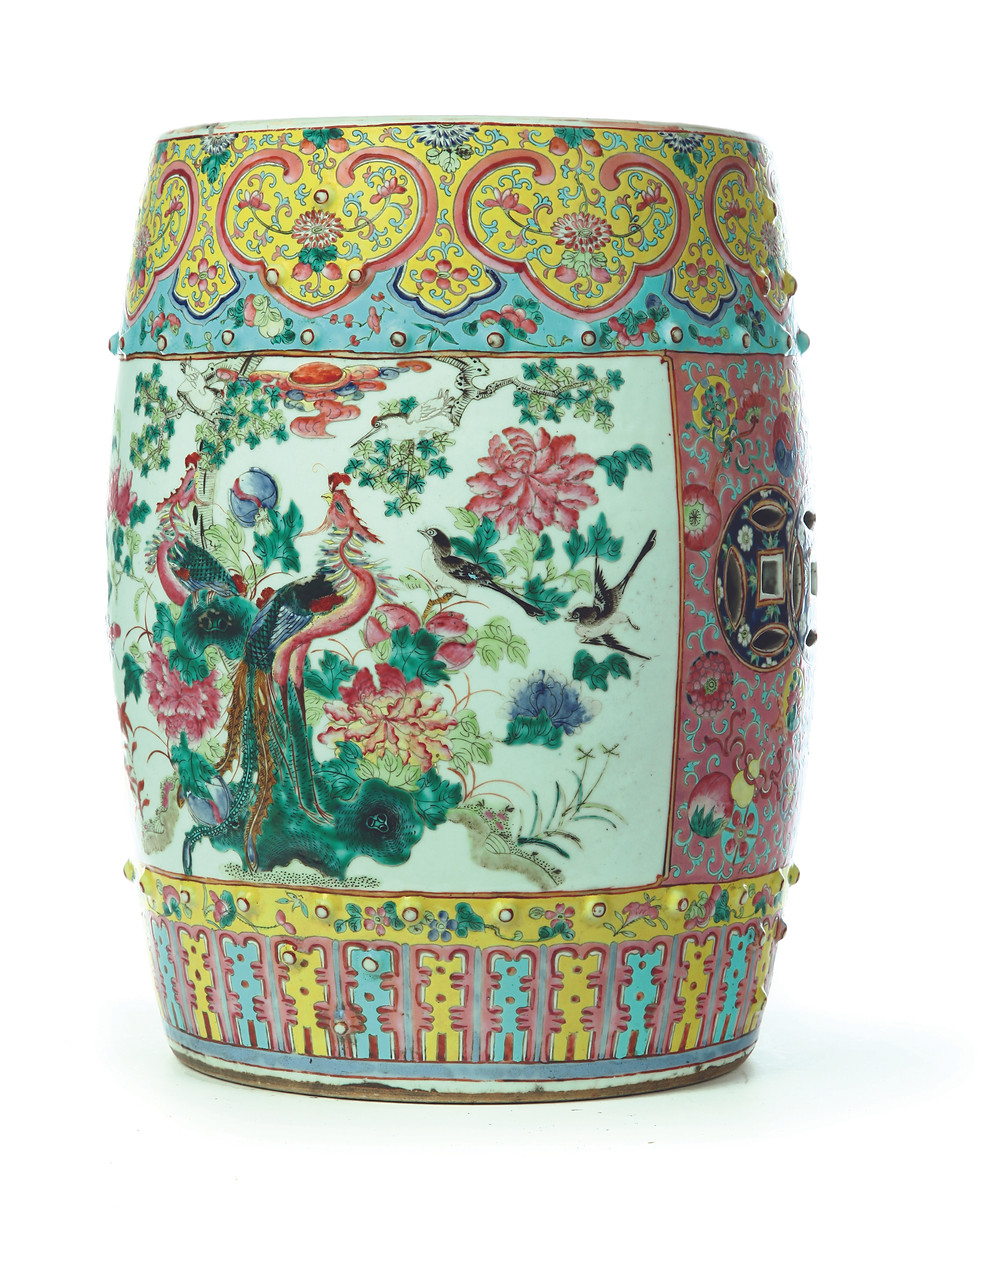 An exquisitely hand-decorated Asian garden seat in brilliant colors, featuring peacocks and the eight Taoist symbols. Sold, $2,820.